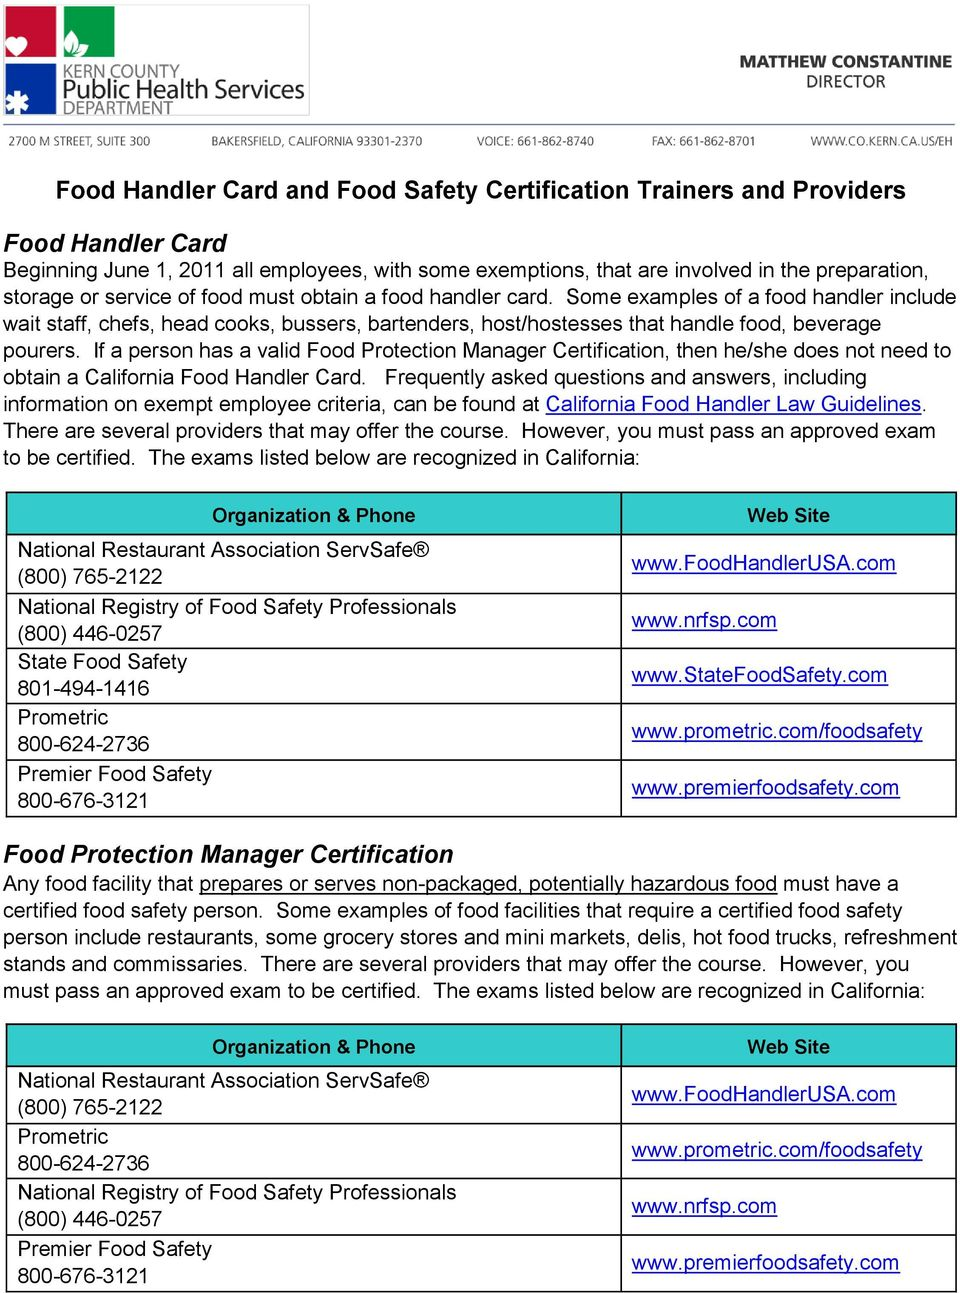 If a person has a valid Food Protection Manager Certification, then he/she does not need to obtain a California Food Handler Card.